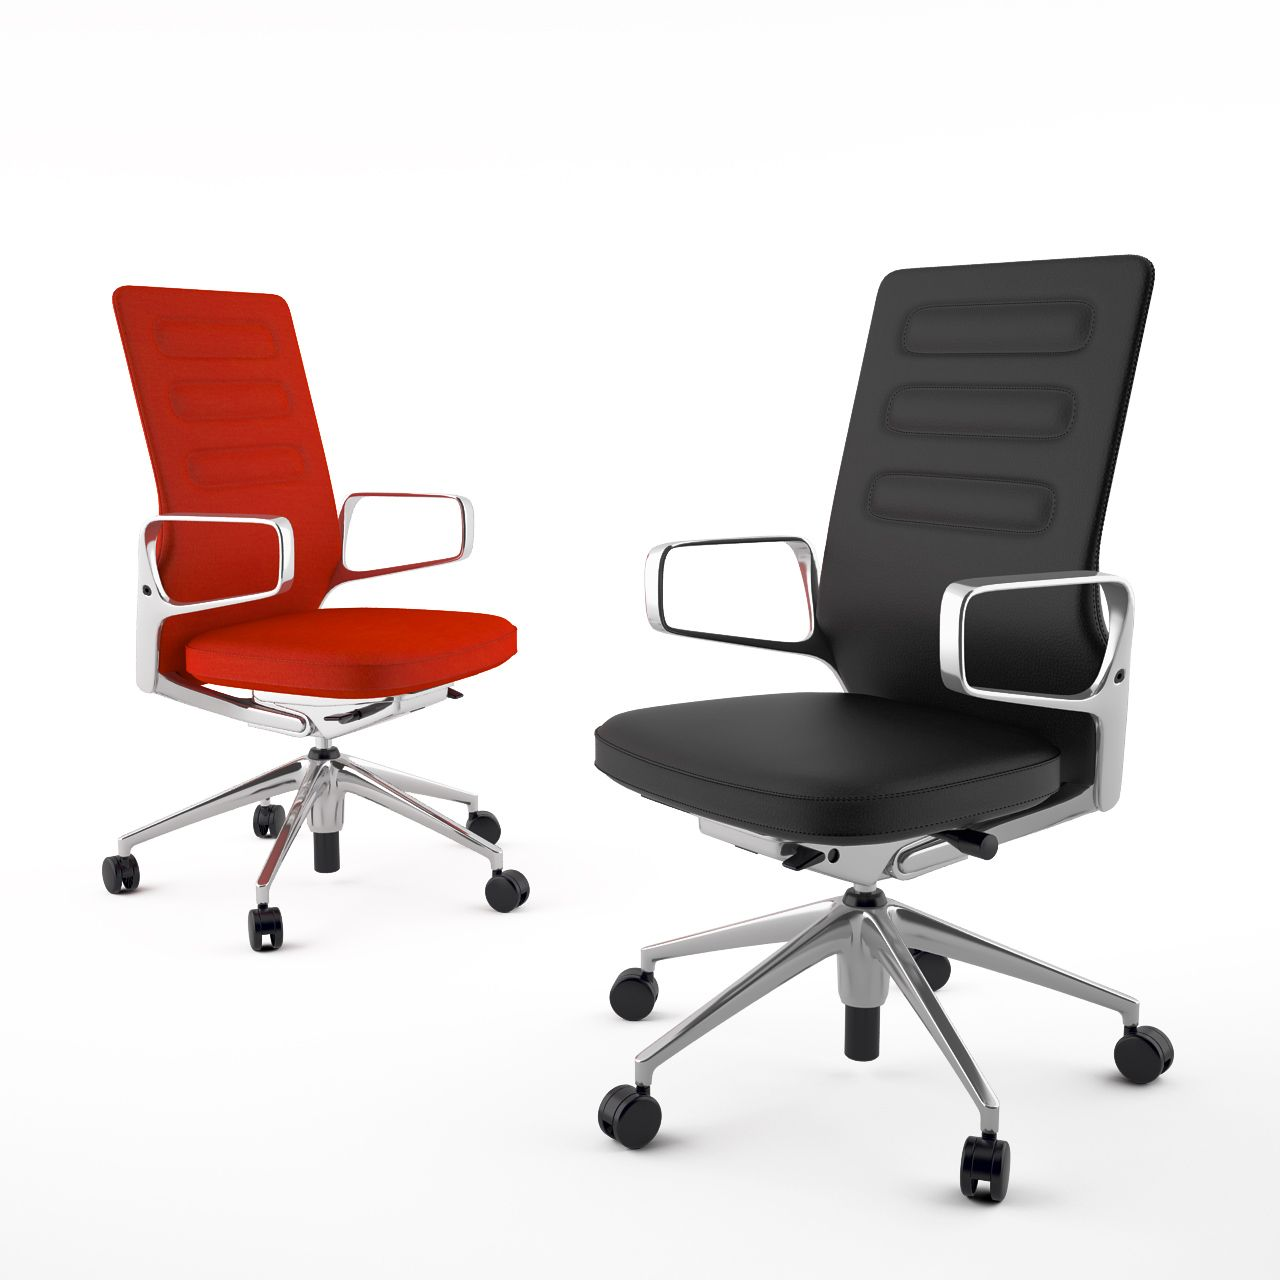 Free 3d model: AC 4 Office Chair by Vitra http://dimensiva.com/ac-4-office-chair-by-vitra/